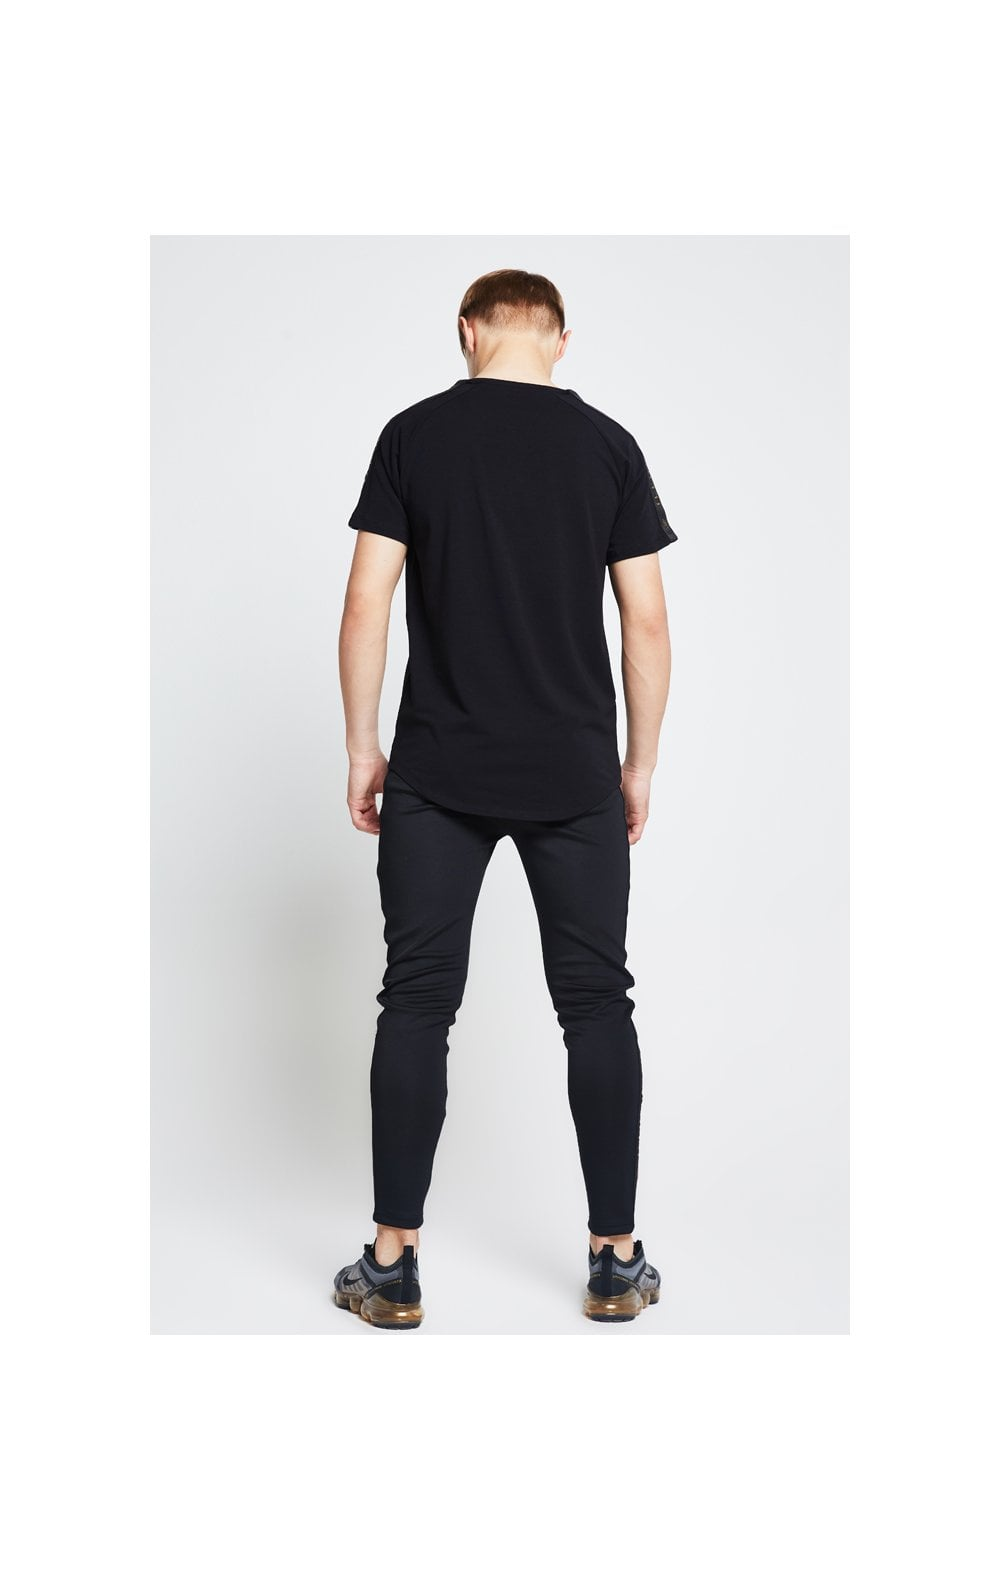 Load image into Gallery viewer, Illusive London Taped Raglan Tee - Black (4)